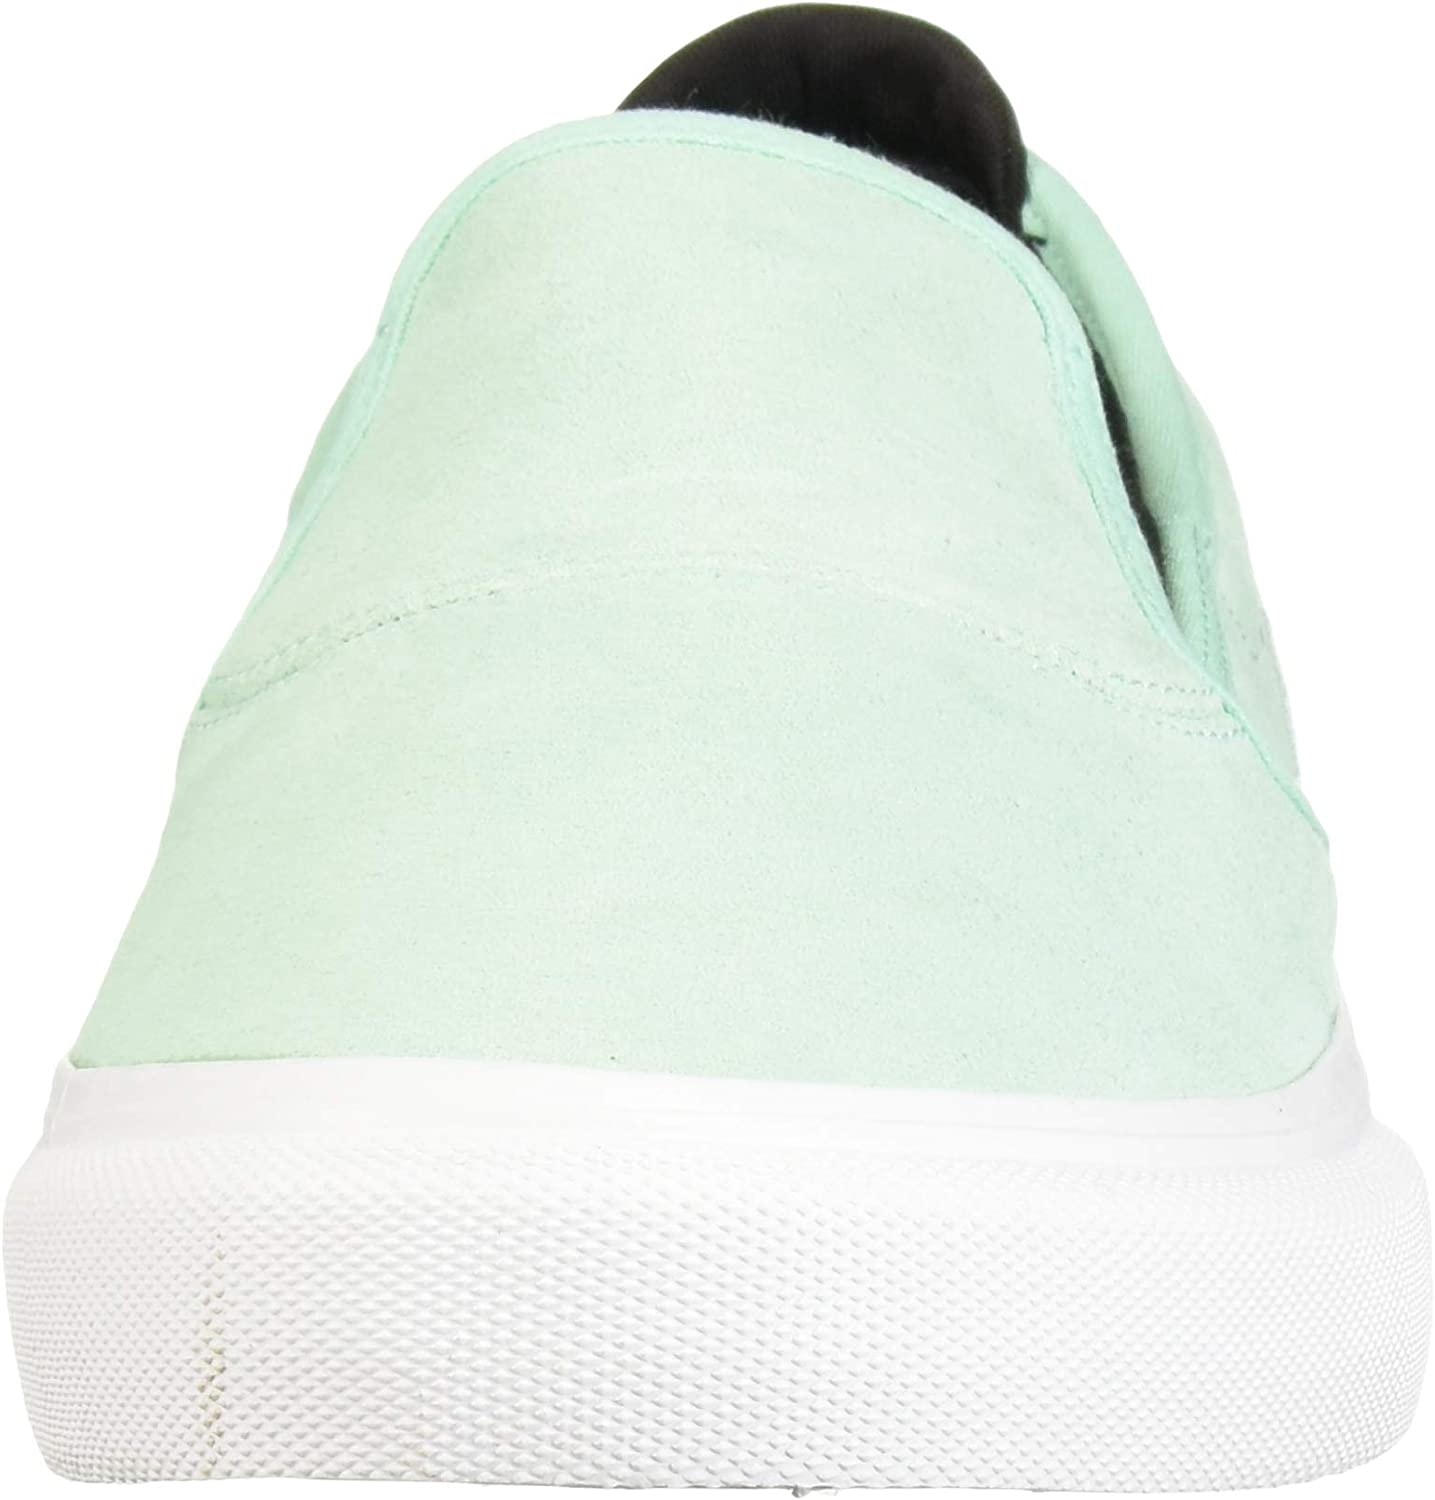 Emerica Wino G6 - pour Homme - Taille :, Hommes, Chaussure de Skate, 6101000111 Menthe